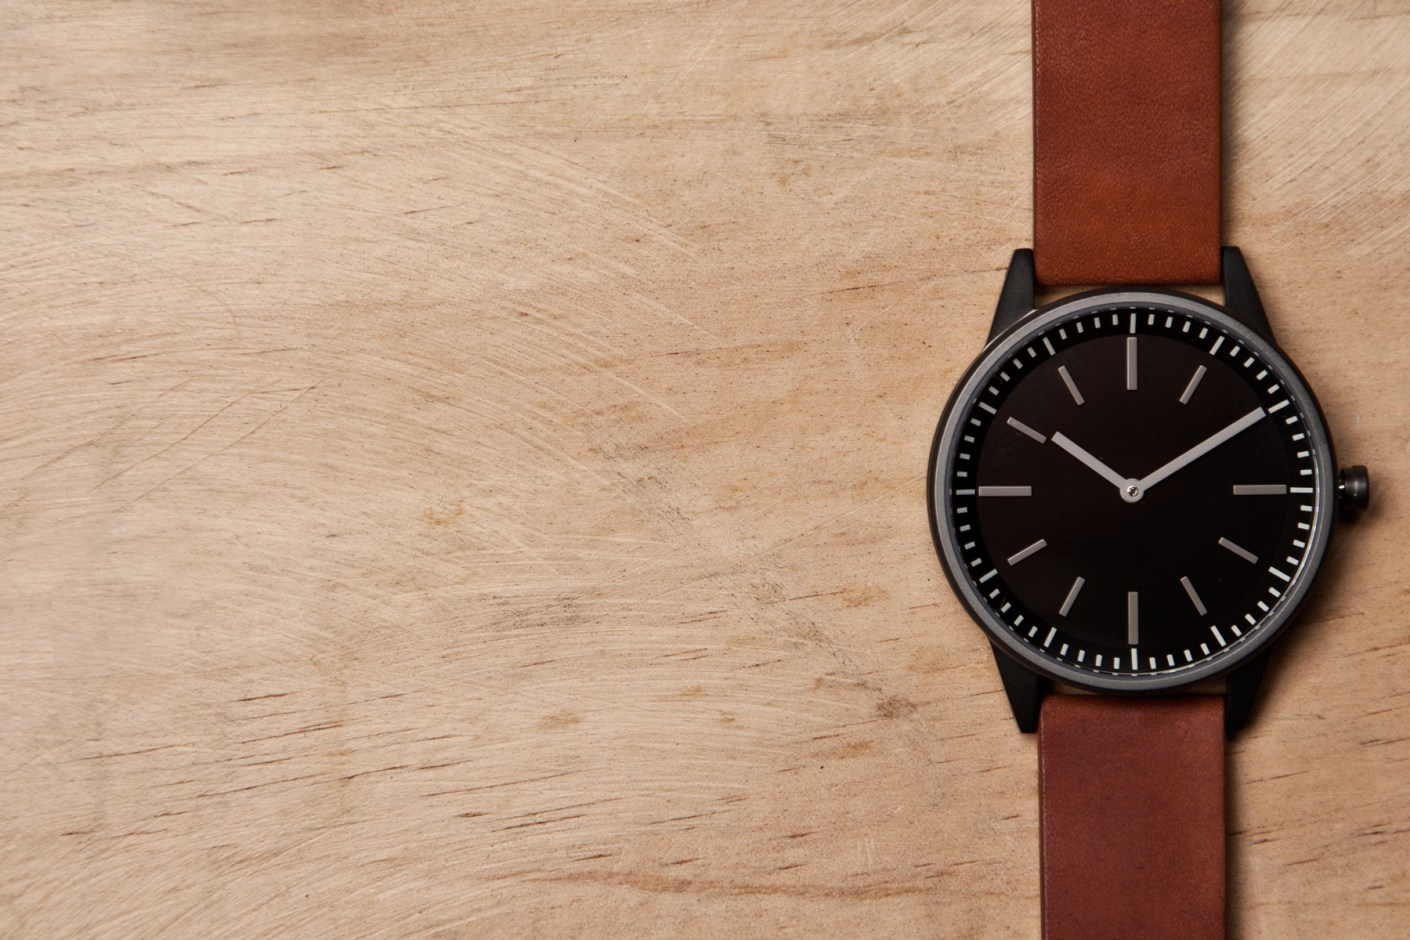 Image of Uniform Wares 2014 Watch Collection